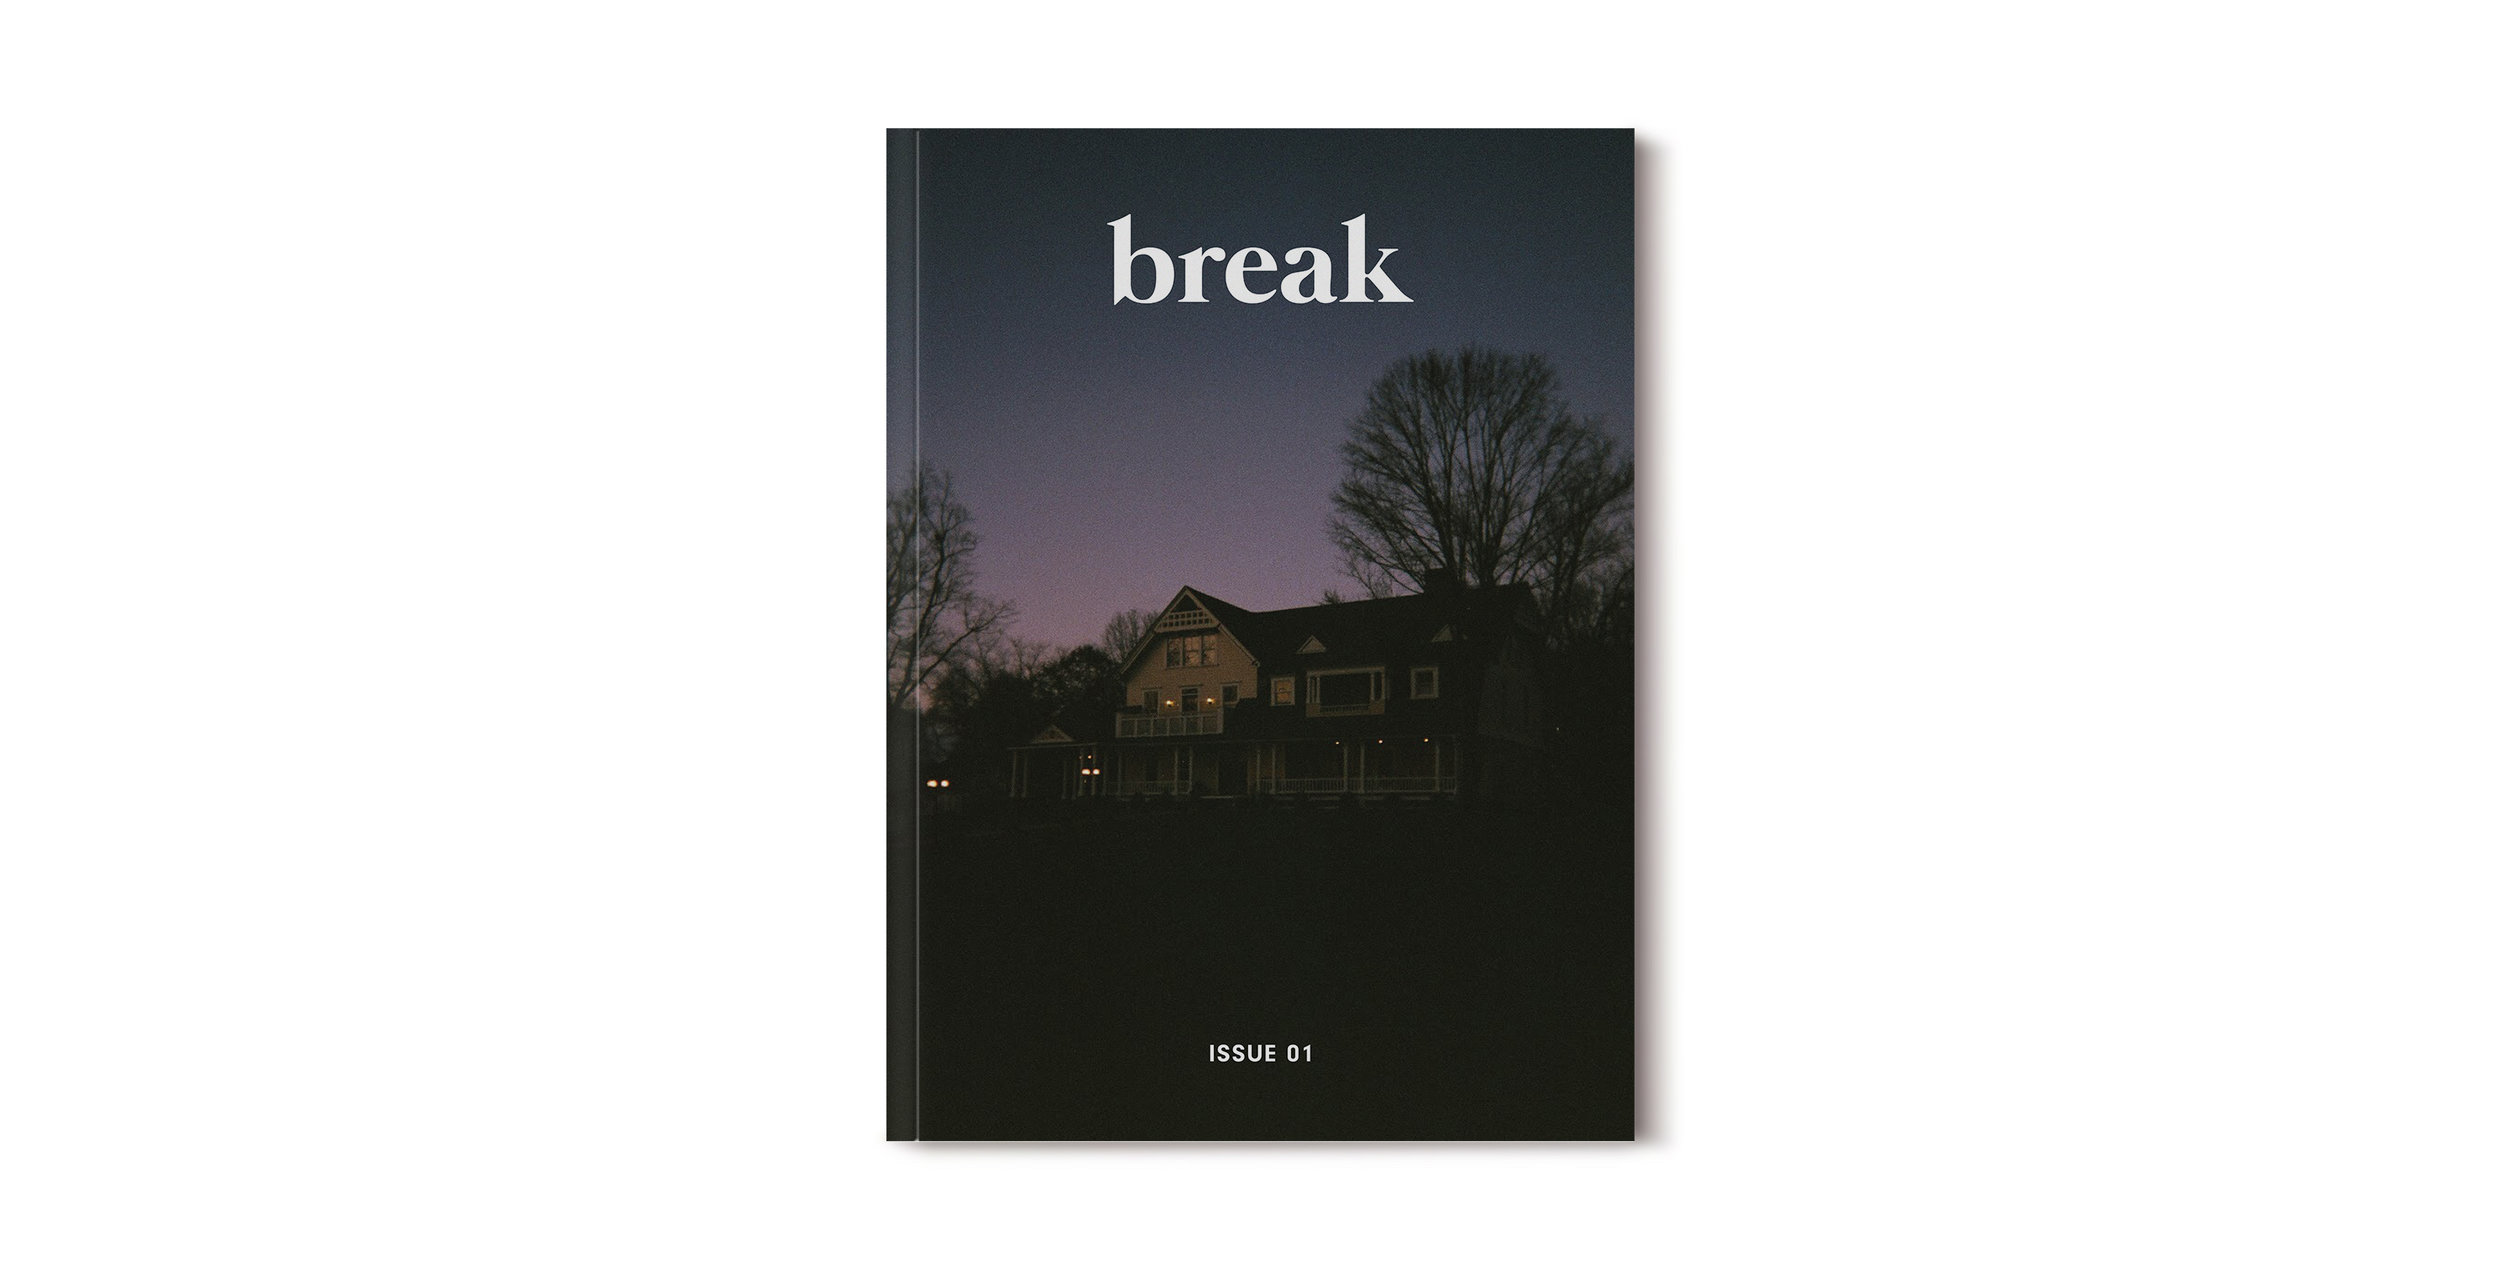 issue01-cover.jpg